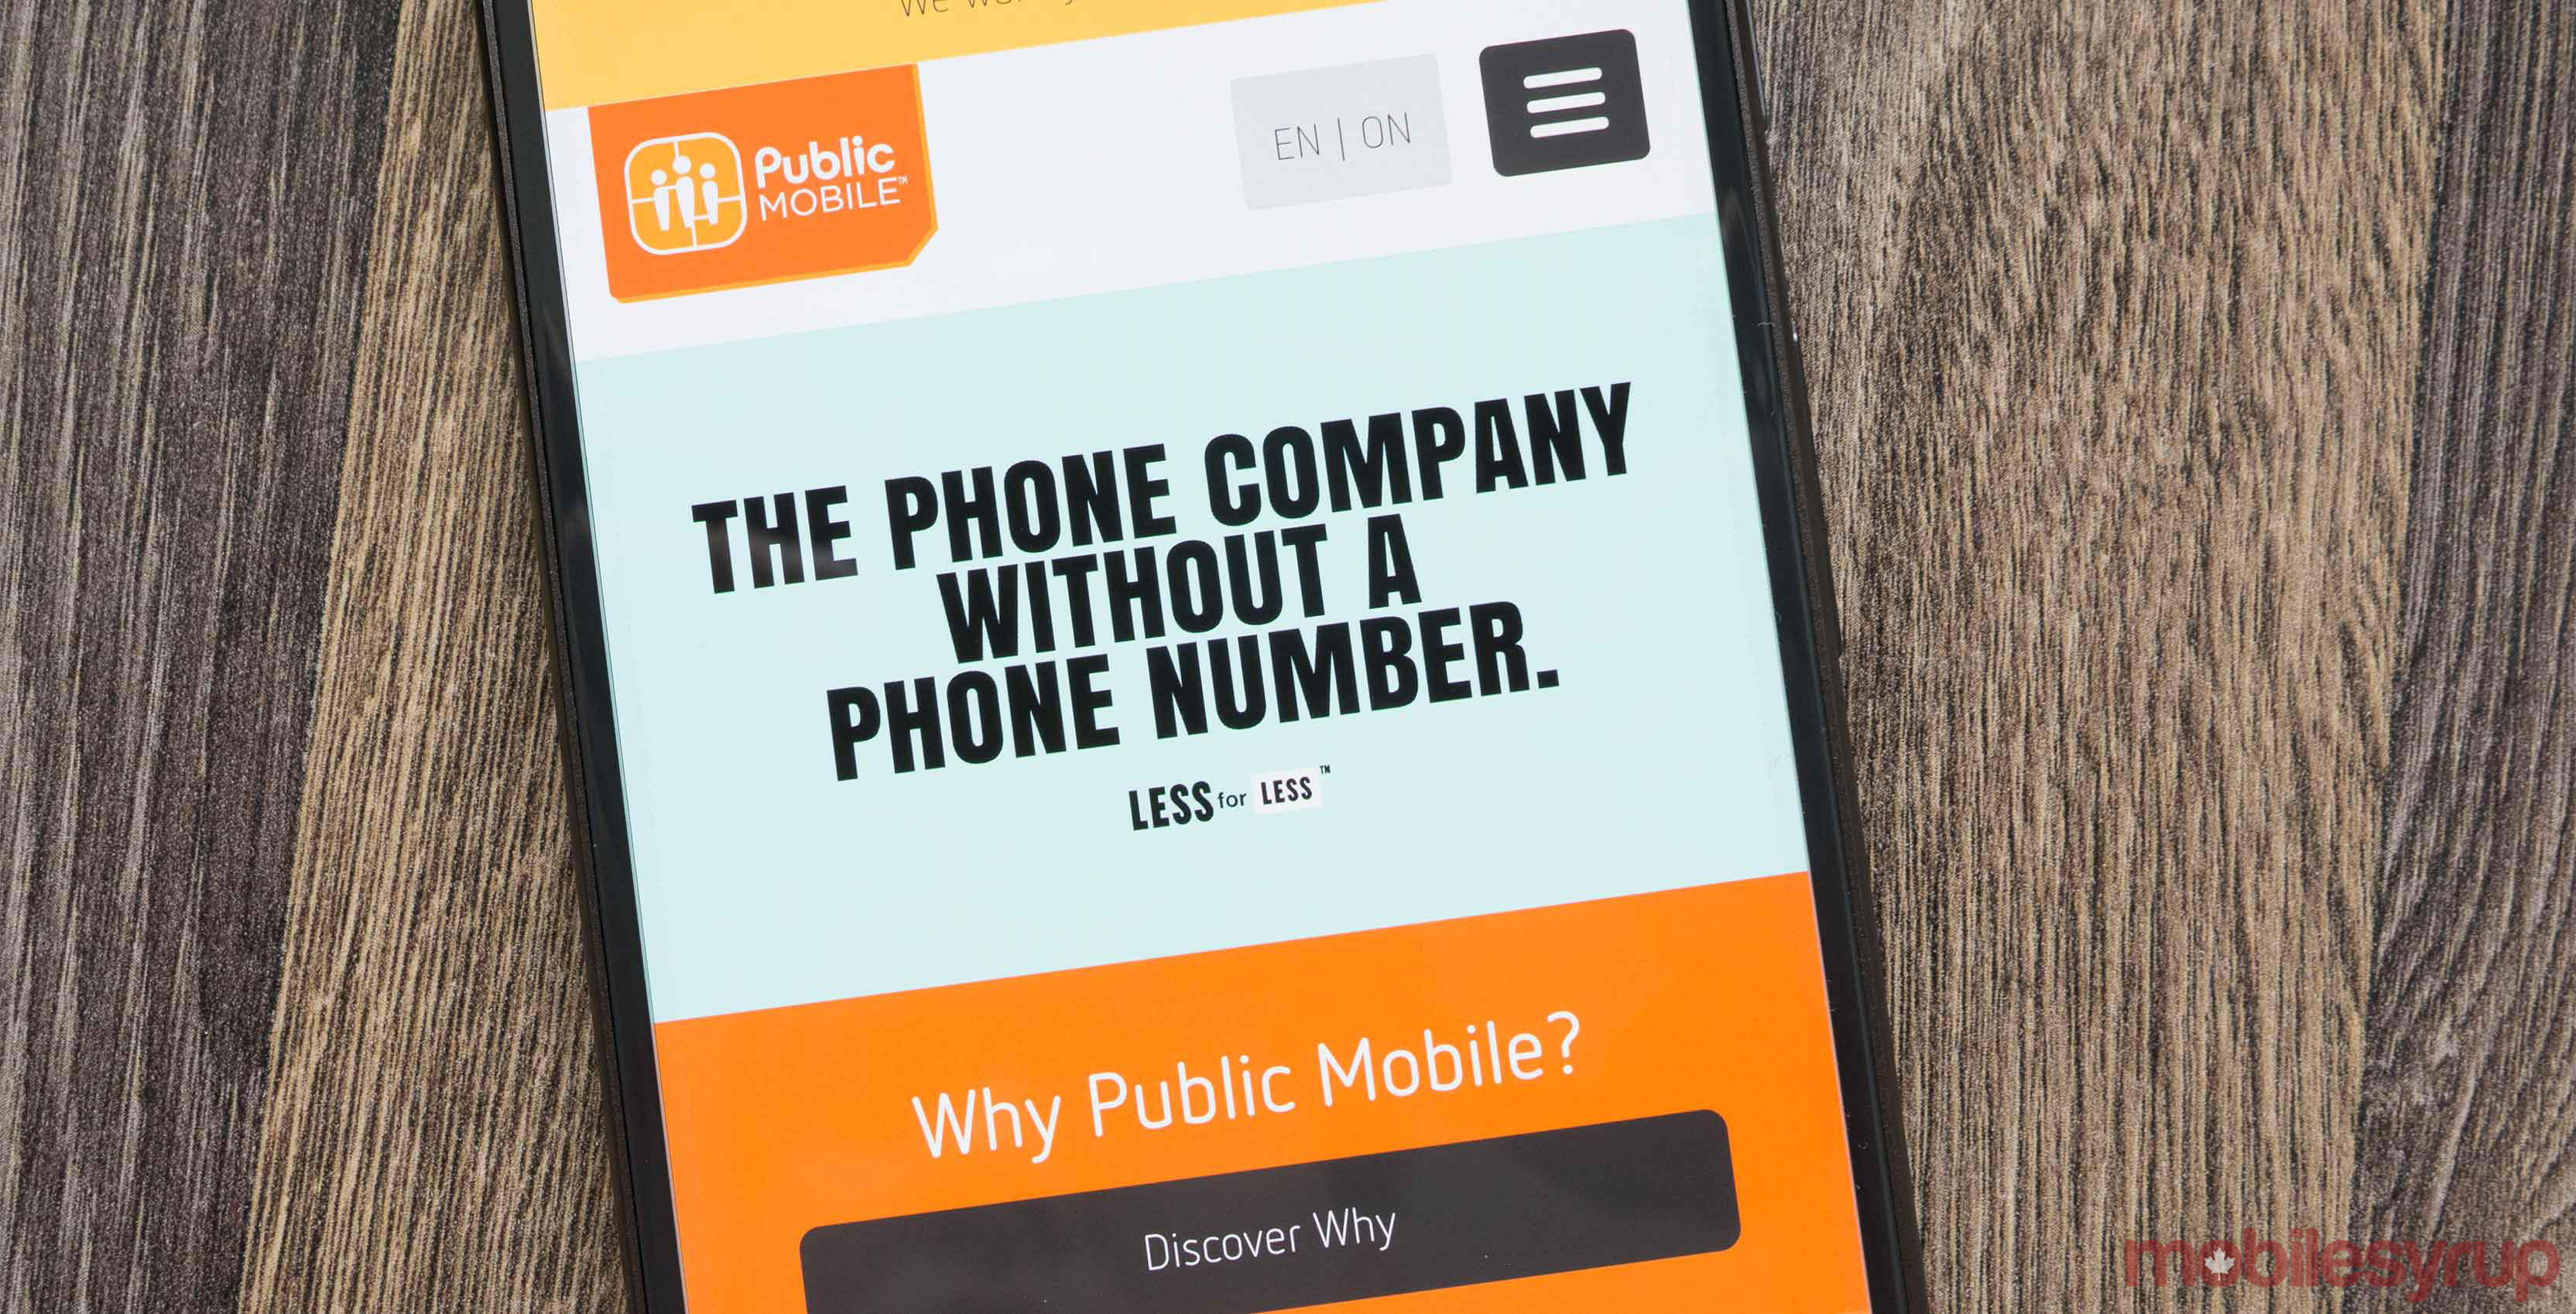 Public Mobile on smartphone